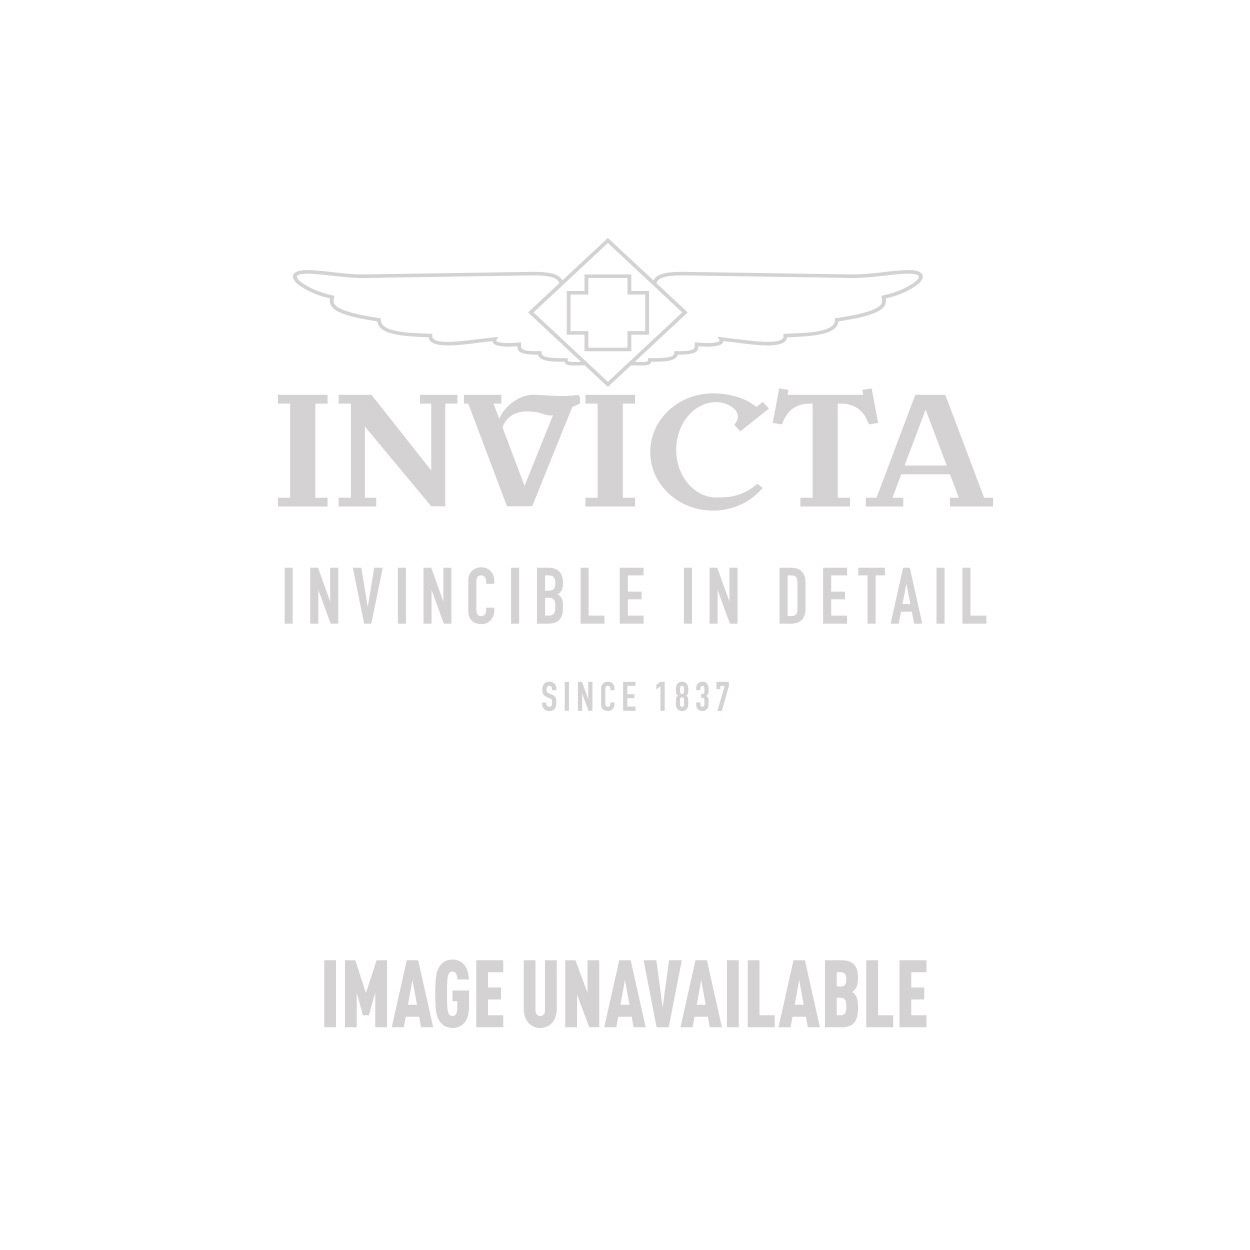 Invicta I-Force Quartz Watch - Stainless Steel case with Black tone Leather band - Model 2770